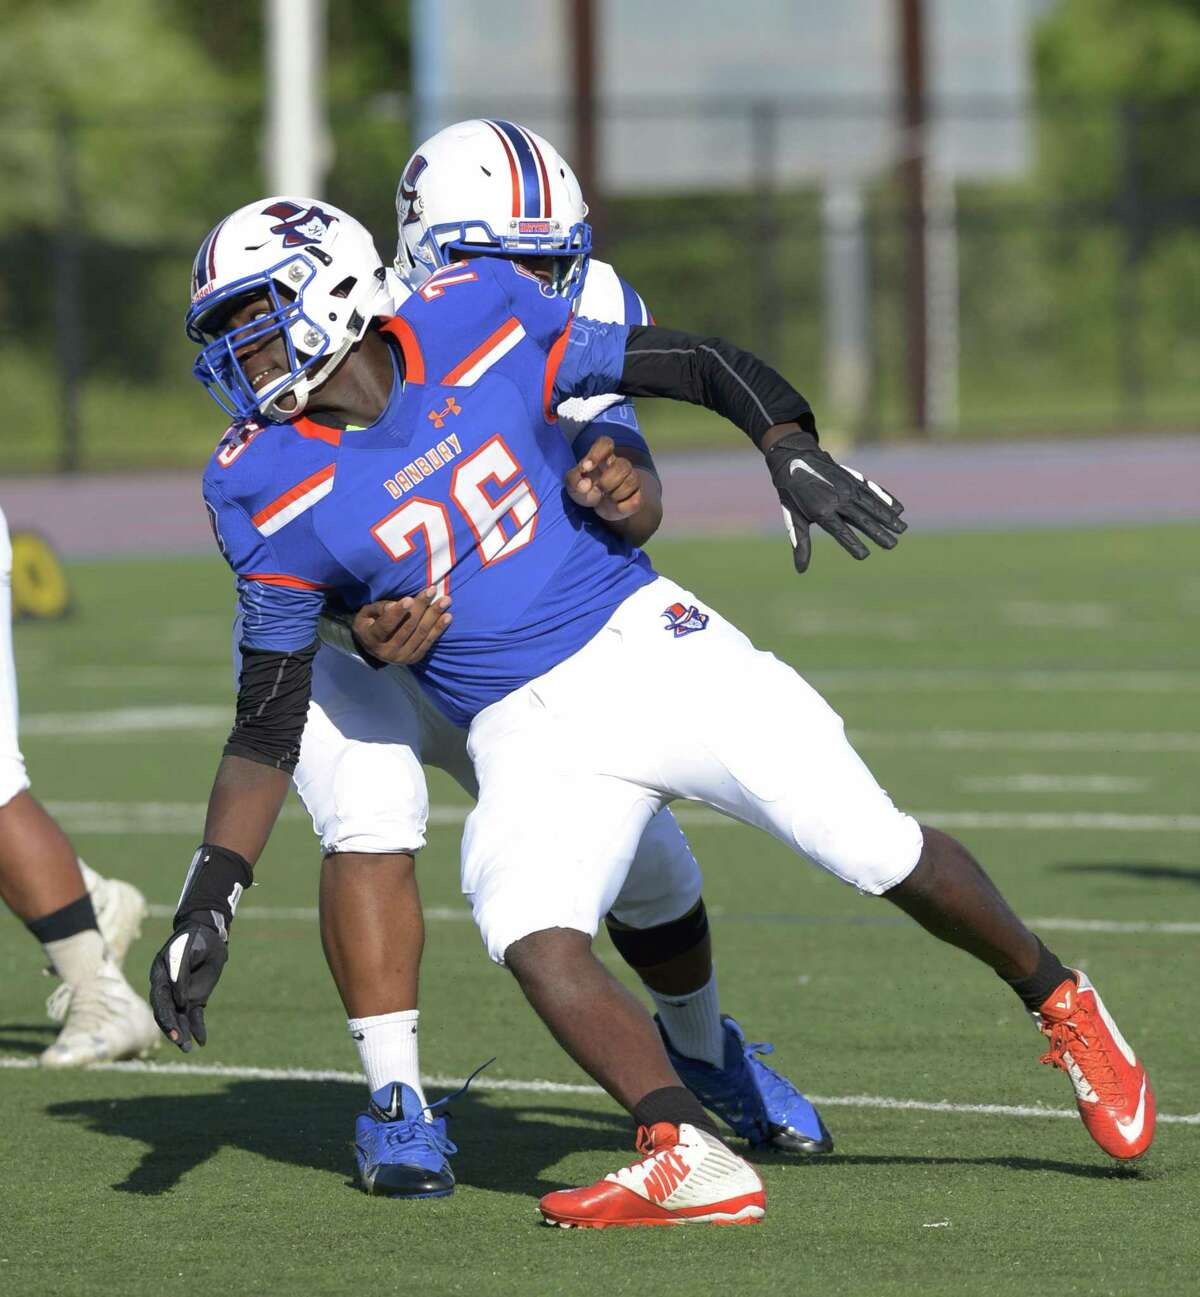 Danbury High School's Jah Joyner plays in the schools Blue & White spring football game on Friday night. June 14, 2019, at Danbury High School, Danbury, Conn. Defensive end Joyner recently committed to play at Boston College.